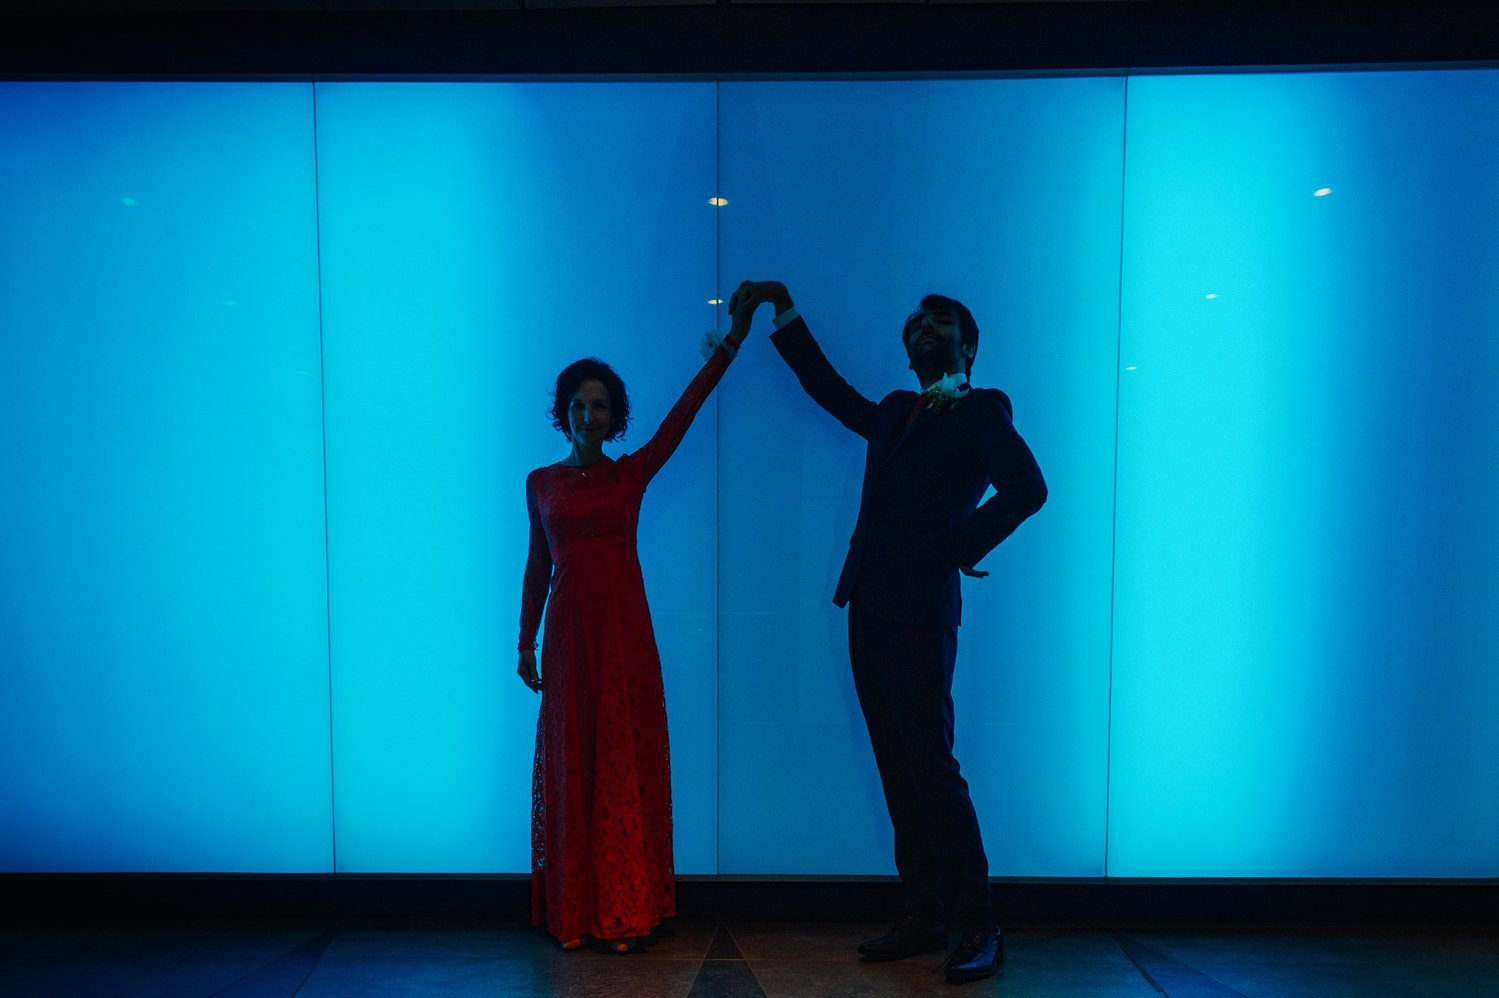 A wedding couple in shadow against a blue background in Kings Cross